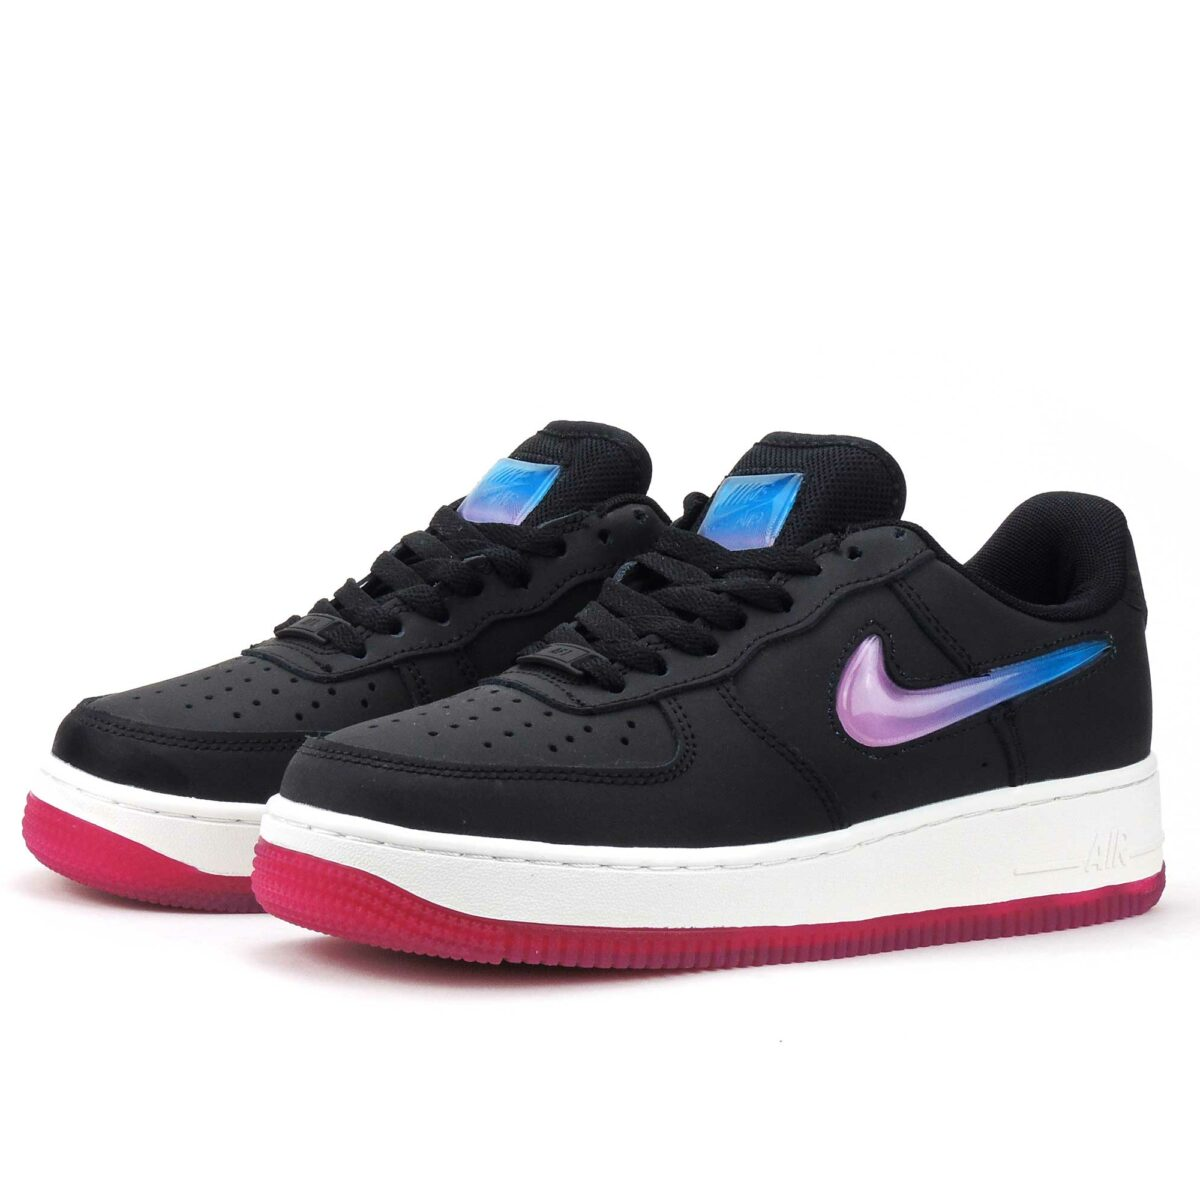 nike air force 1 07 se prm AT4143_001 купить